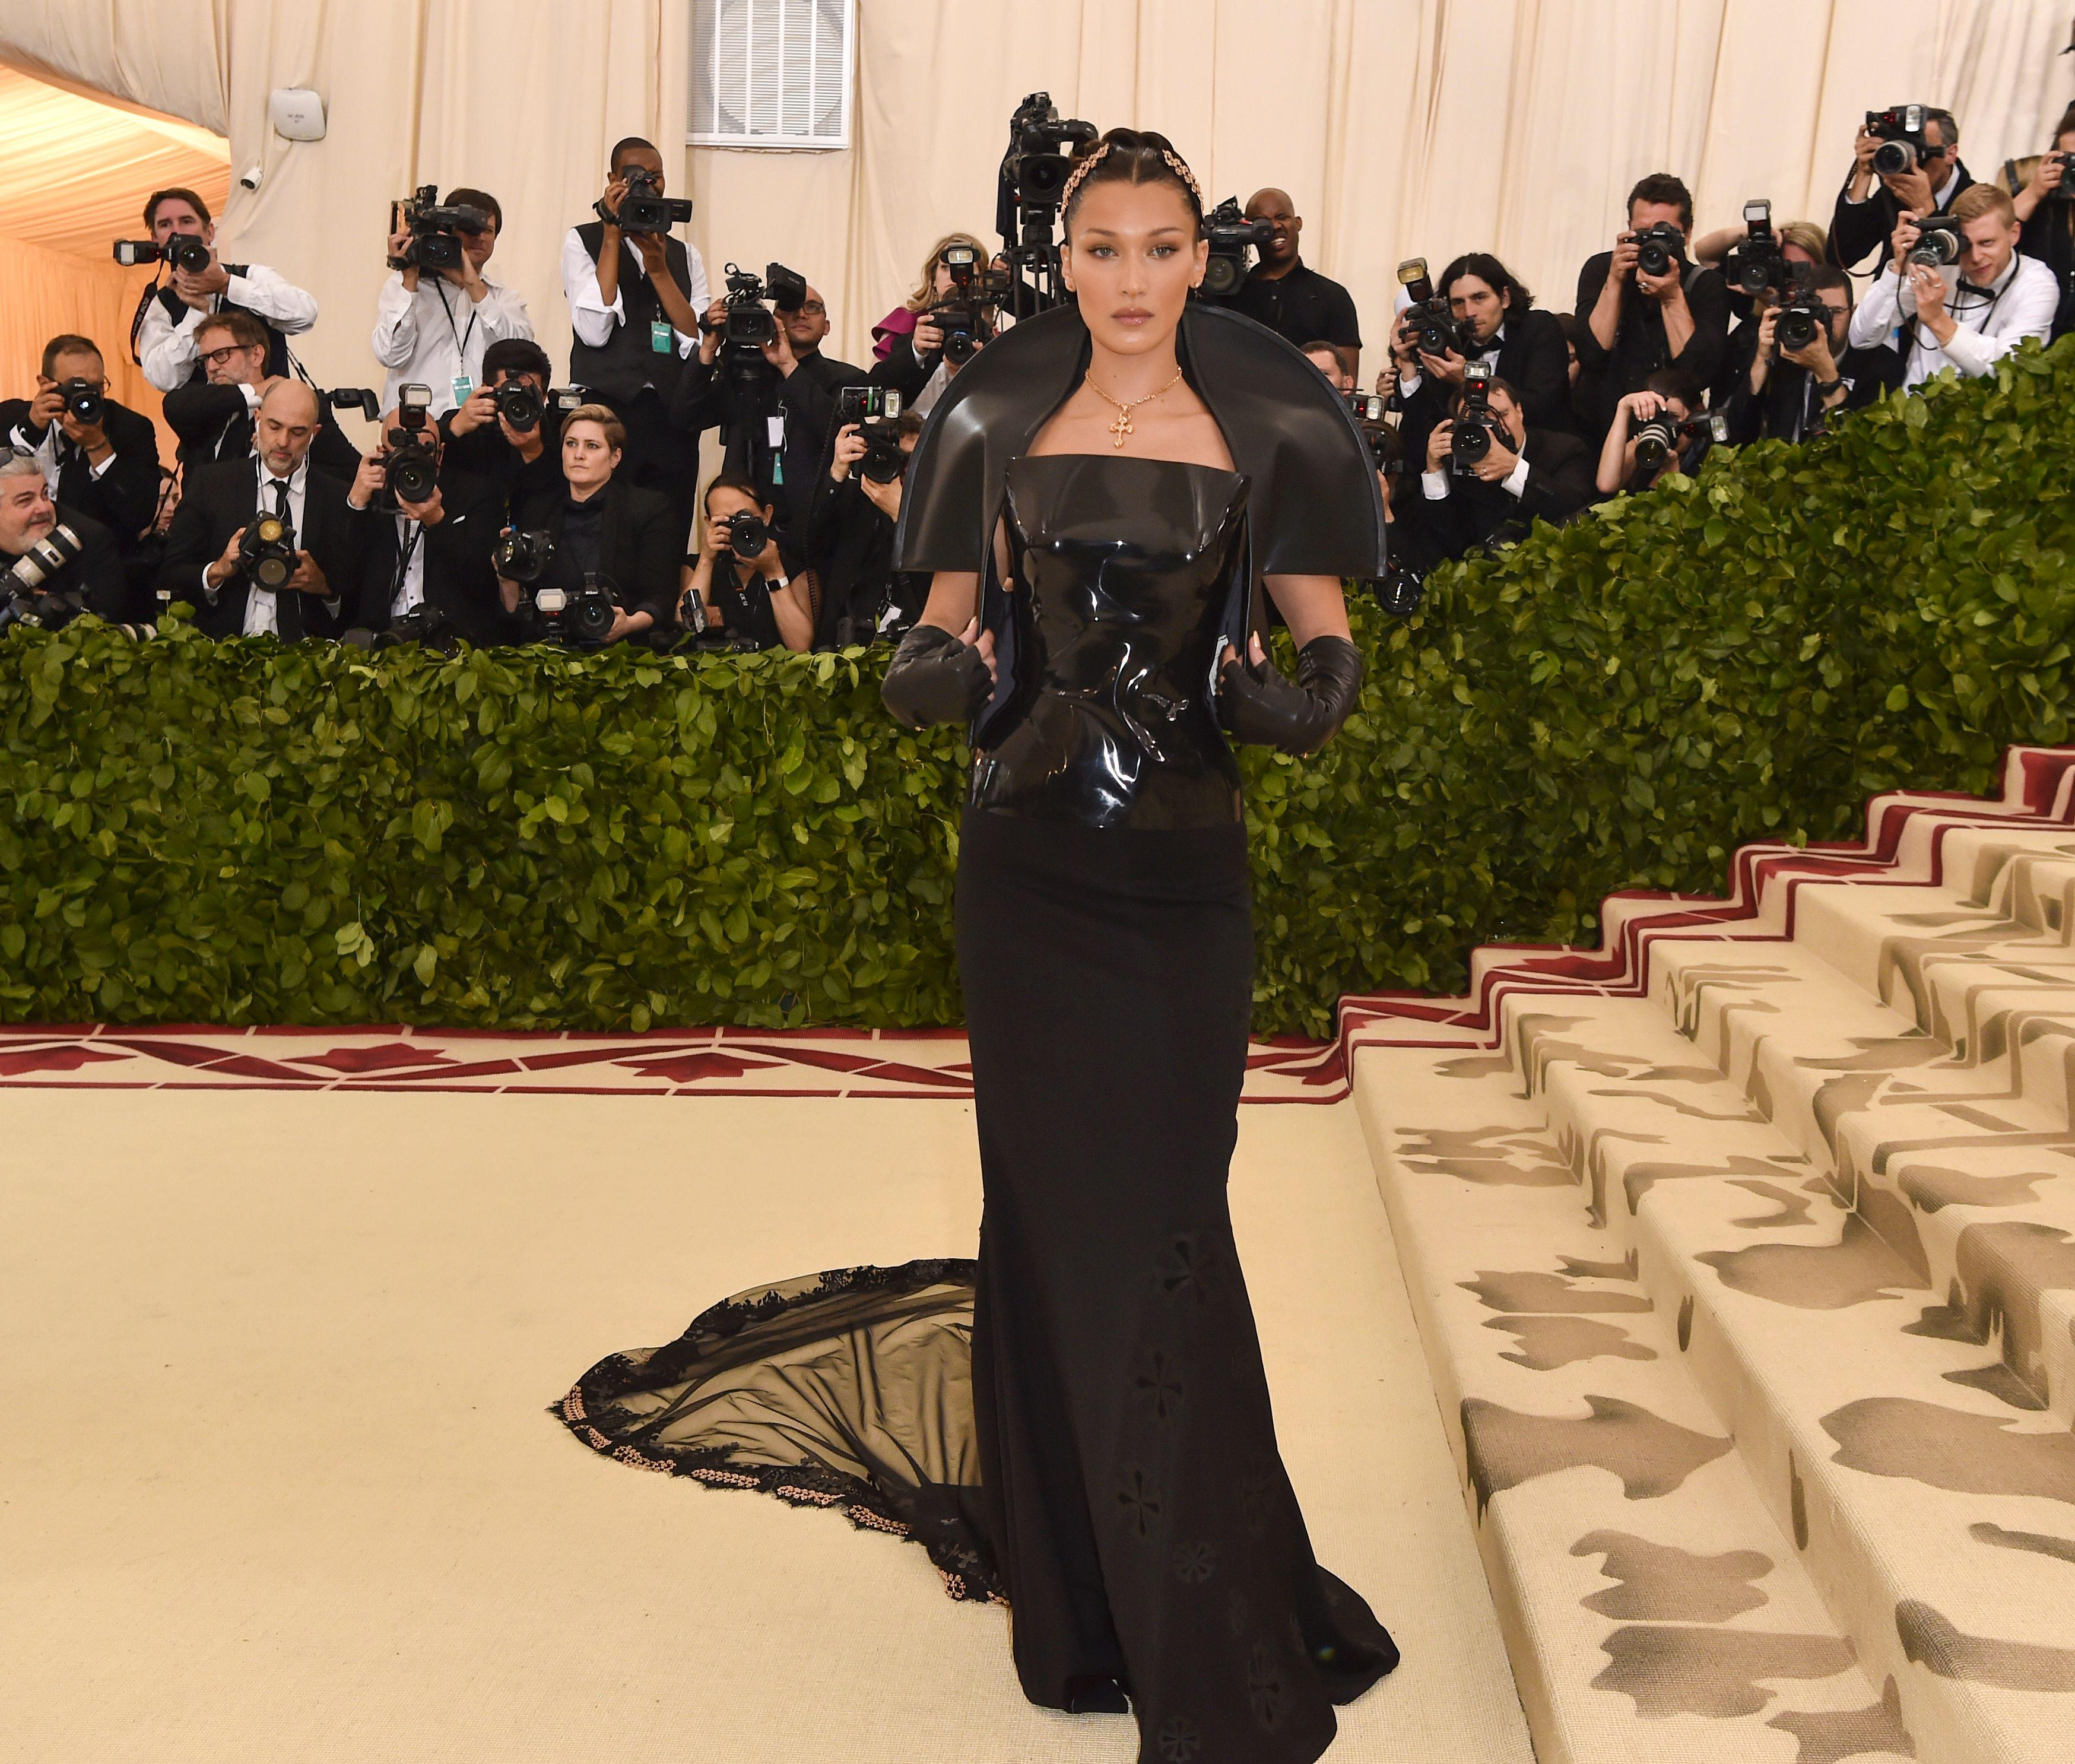 Bella Hadid arrives for the 2018 Met Gala on May 7, 2018, at the Metropolitan Museum of Art in New York. - The Gala raises money for the Metropolitan Museum of Arts Costume Institute. The Gala's 2018 theme is Heavenly Bodies: Fashion and the Catholic Imagination. (Photo by Hector RETAMAL / AFP)        (Photo credit should read HECTOR RETAMAL/AFP/Getty Images)